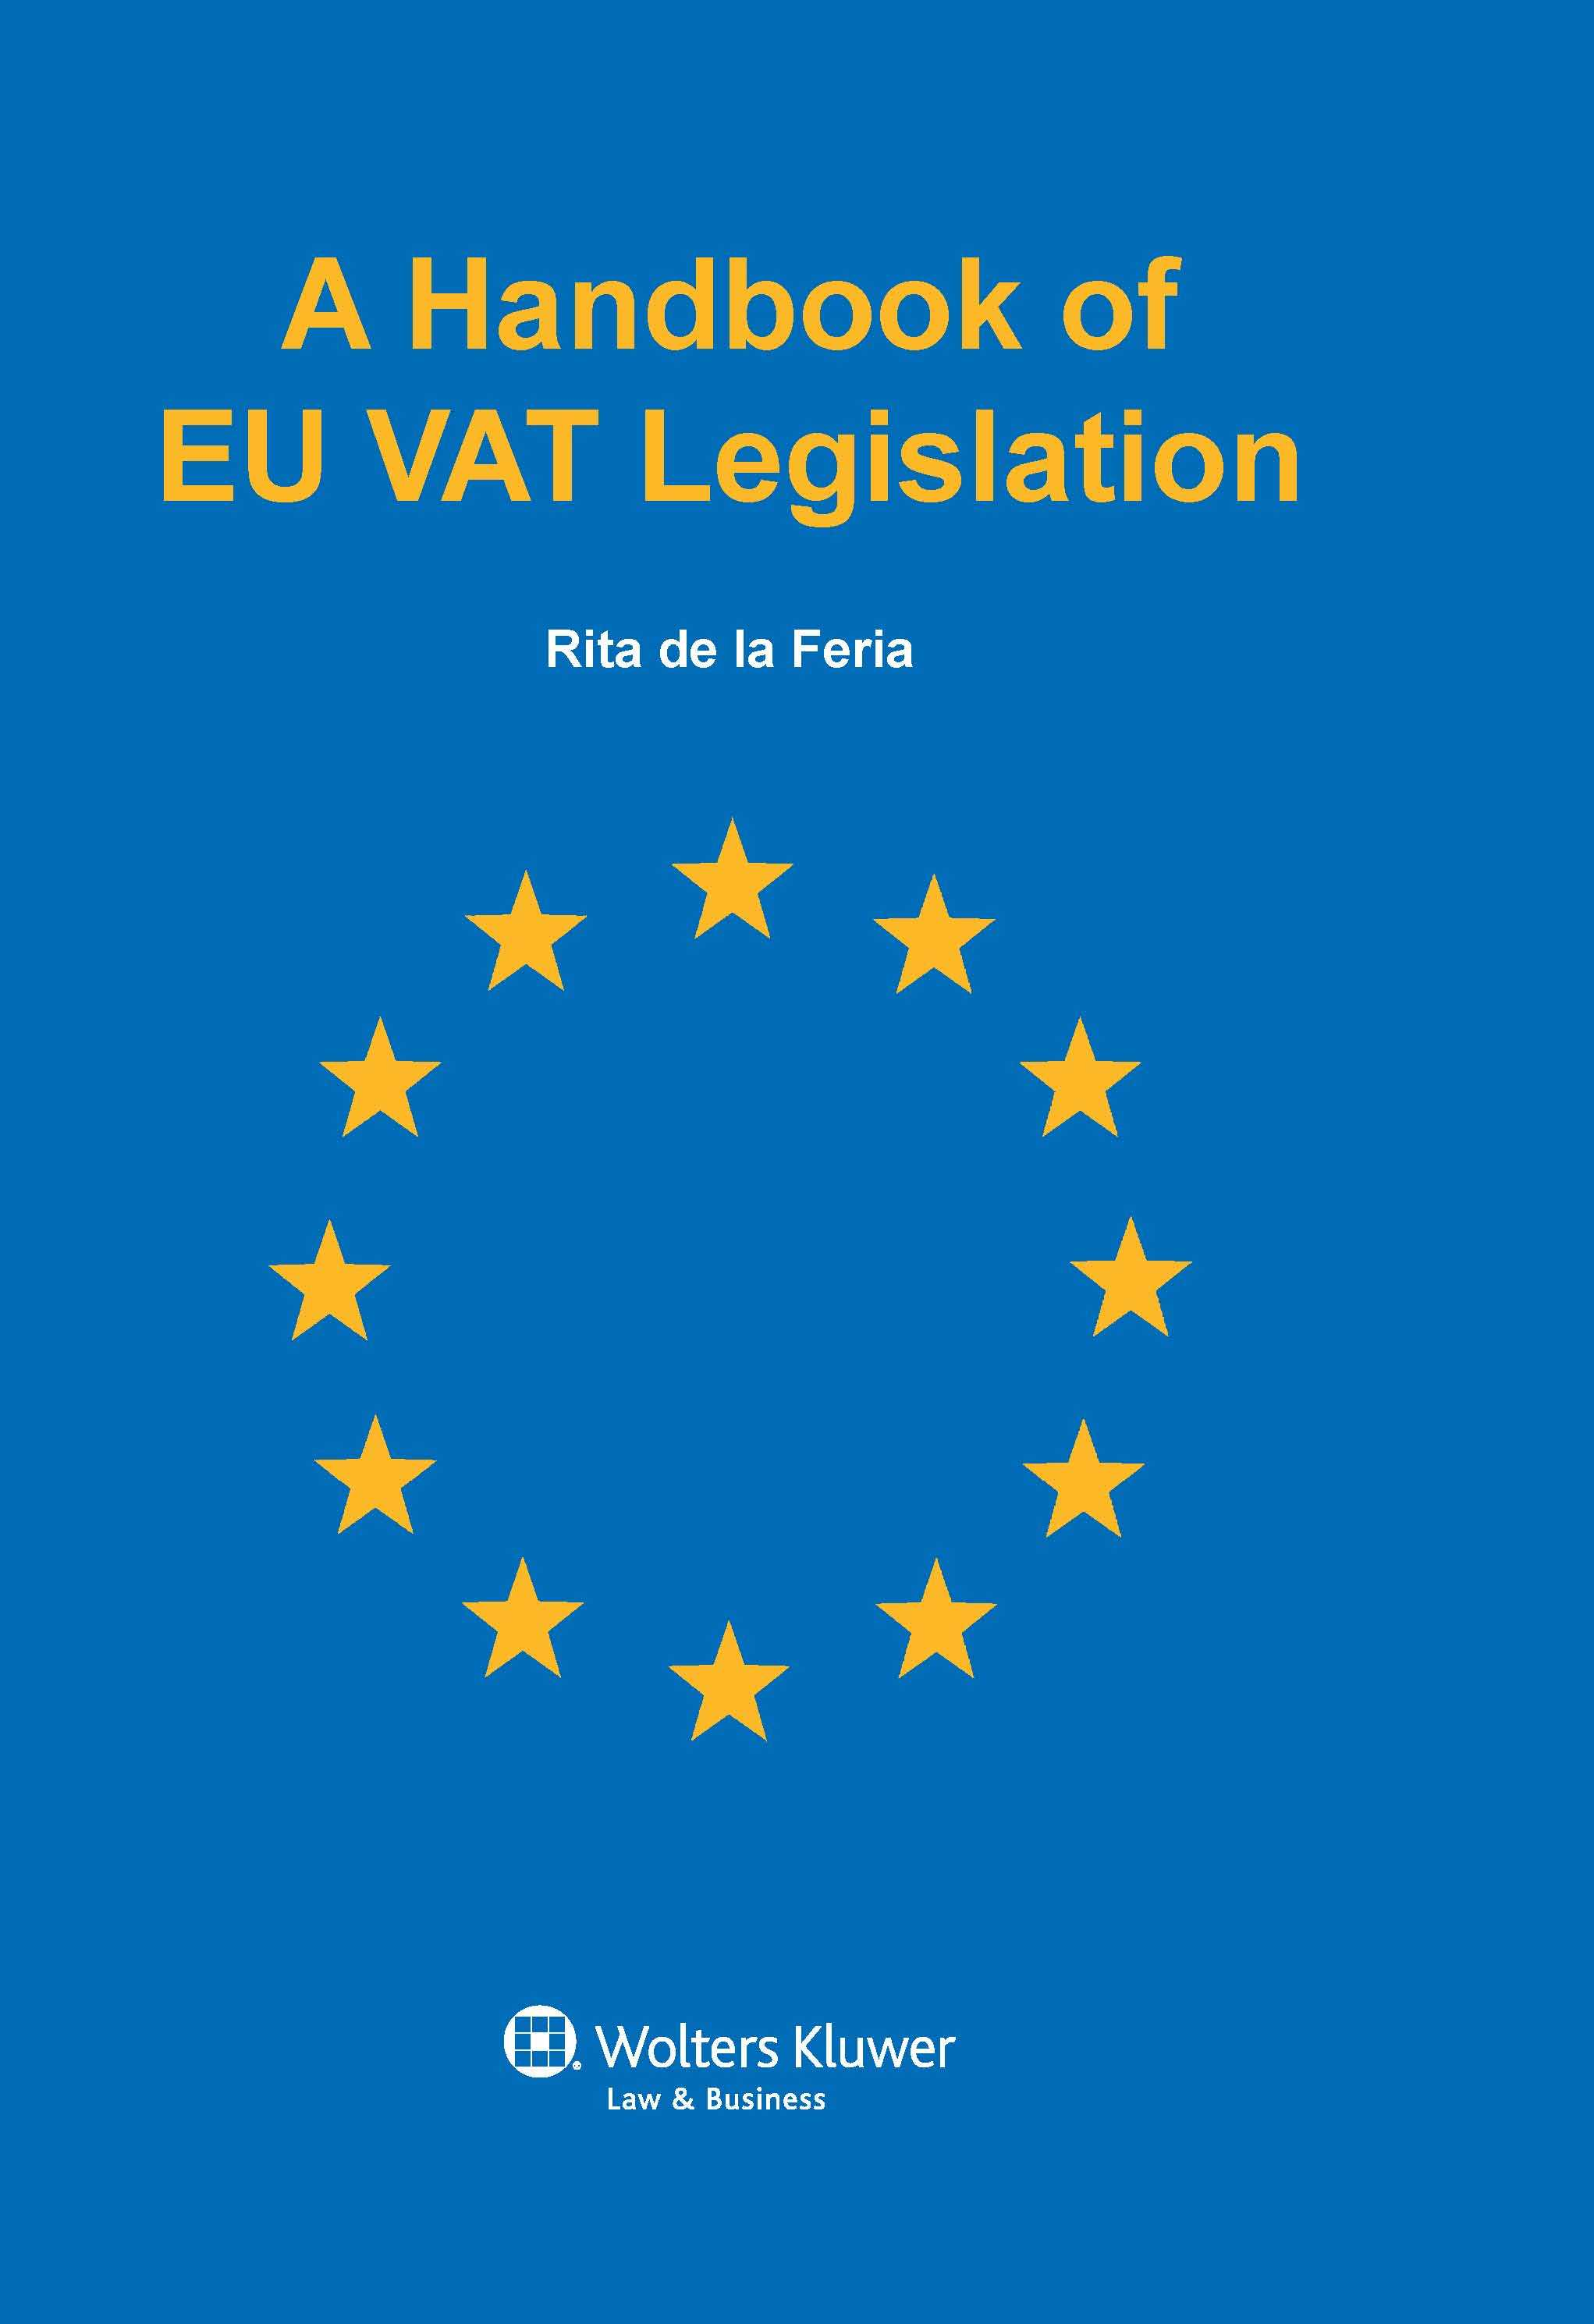 A Handbook EU VAT Legislation by DE LA FERIA